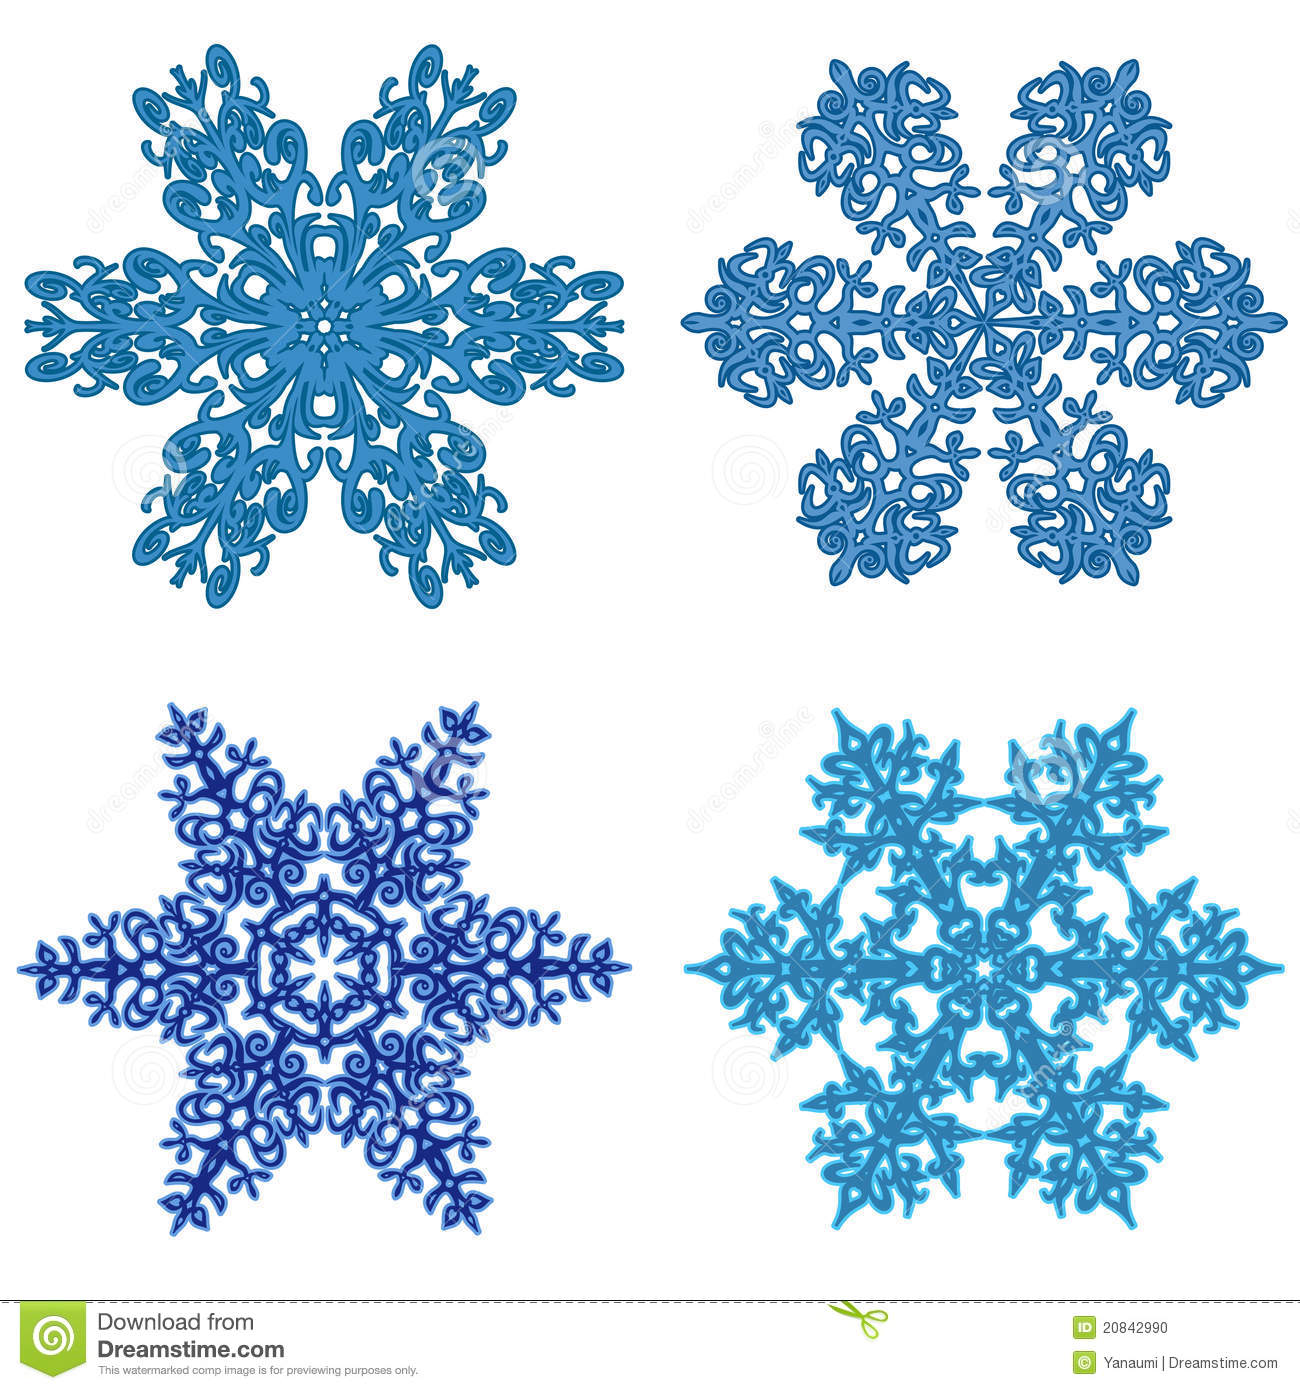 snowflakes clipart stock vector illustration of seasonal 20842990 rh dreamstime com Elegant Snowflake Clip Art White Snowflake Clip Art